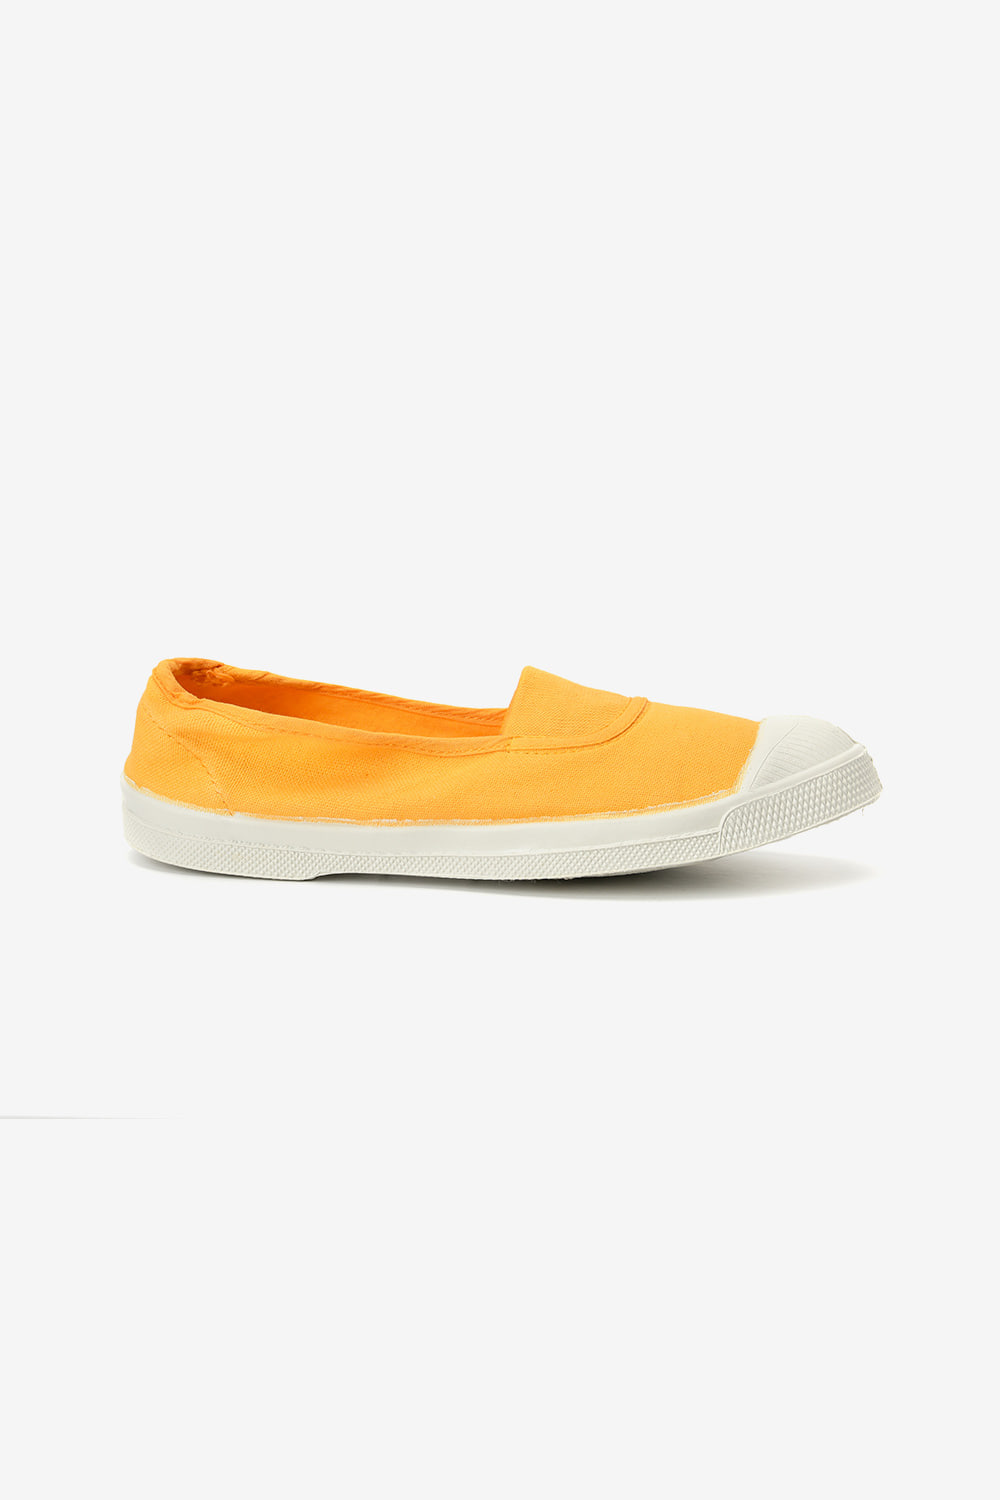 [Woman Elastique] Buttercup YellowBS0SSO111YL